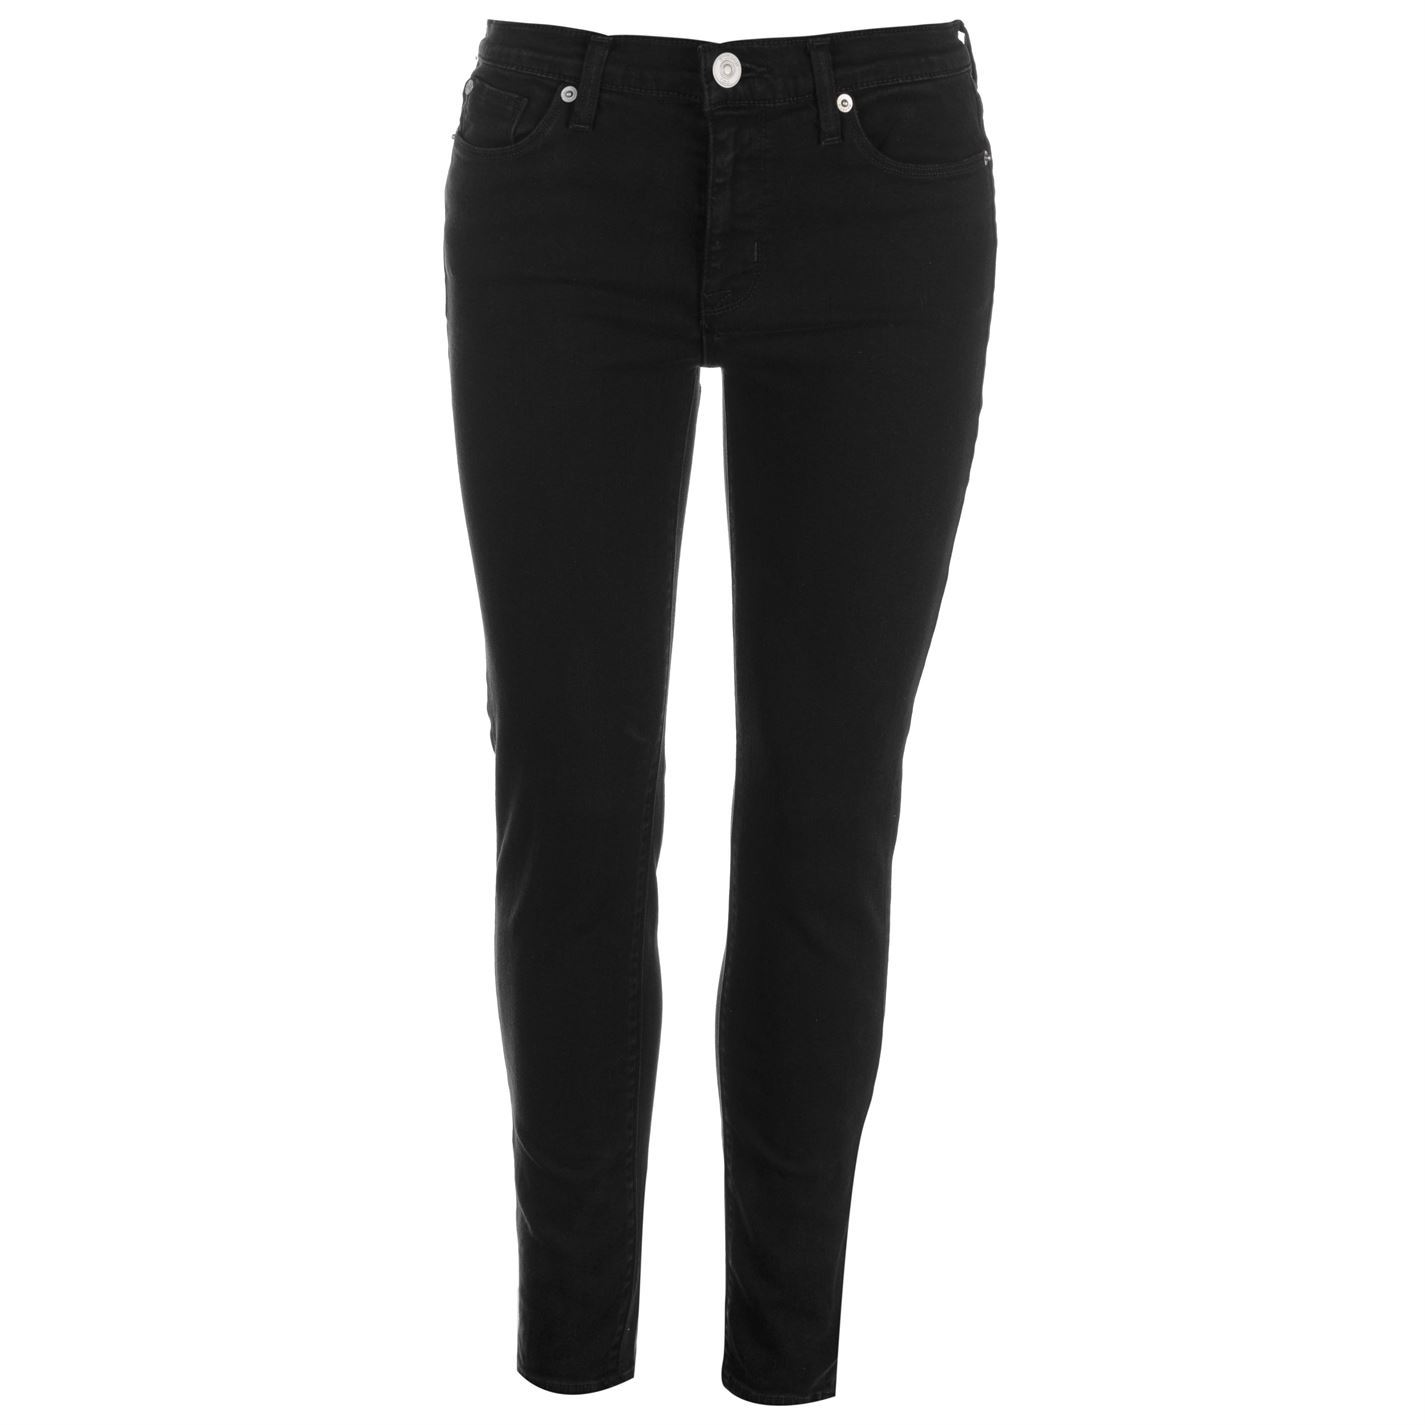 Hudson-Jeans-Womens-Midrise-Nico-Skinny-Pants-Trousers-Bottoms